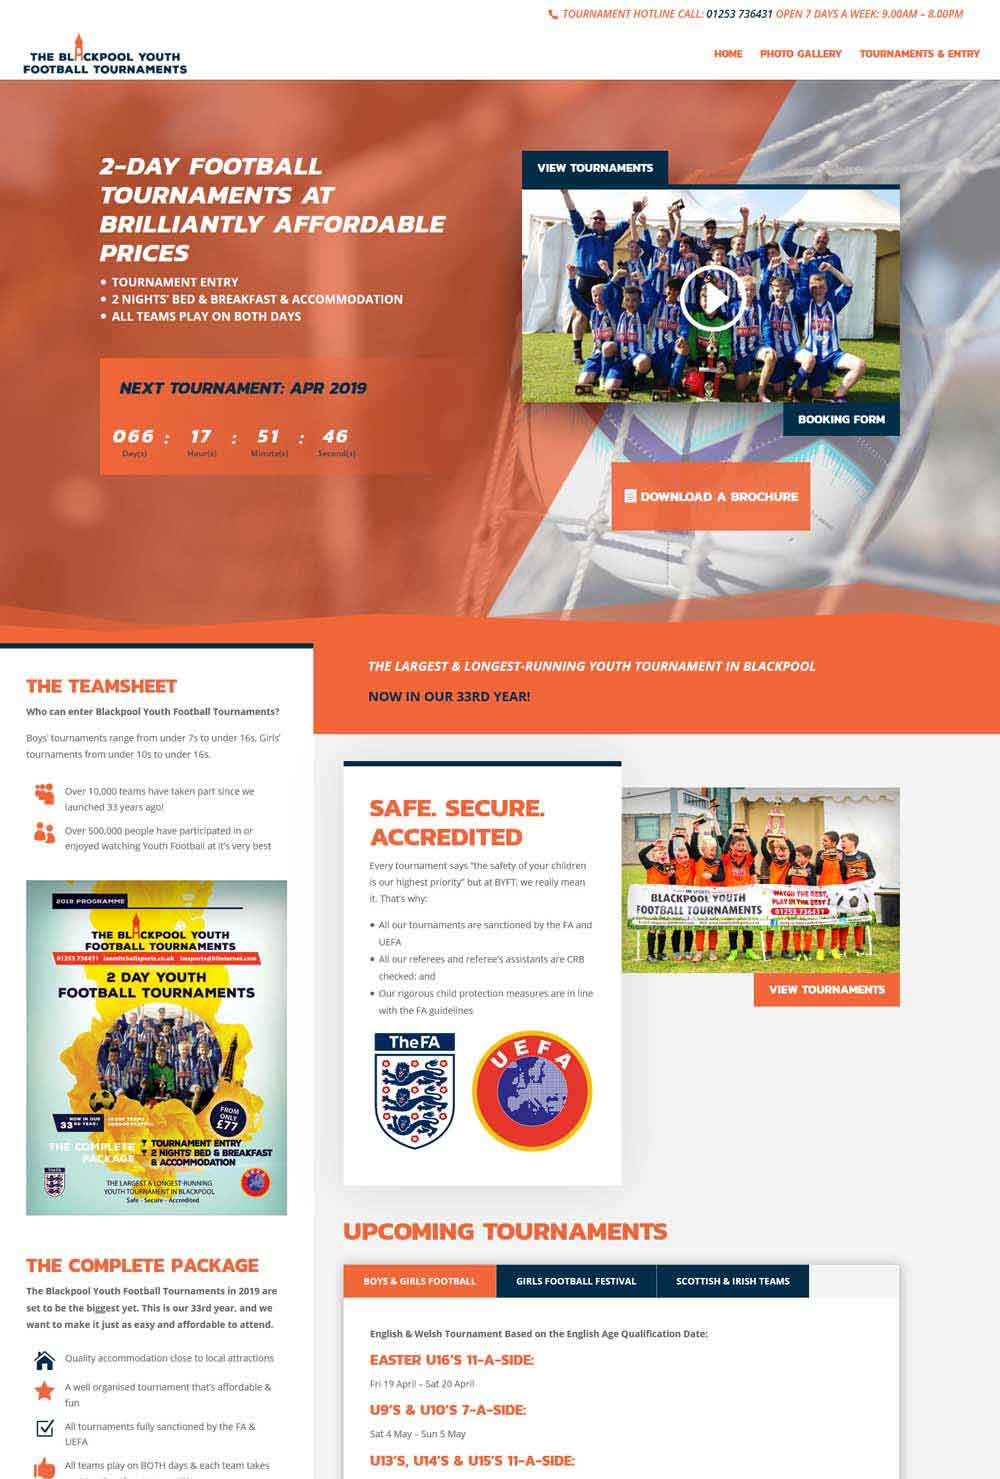 Blackpool Youth Football Tournaments new website design - Bernie Bradley Websites